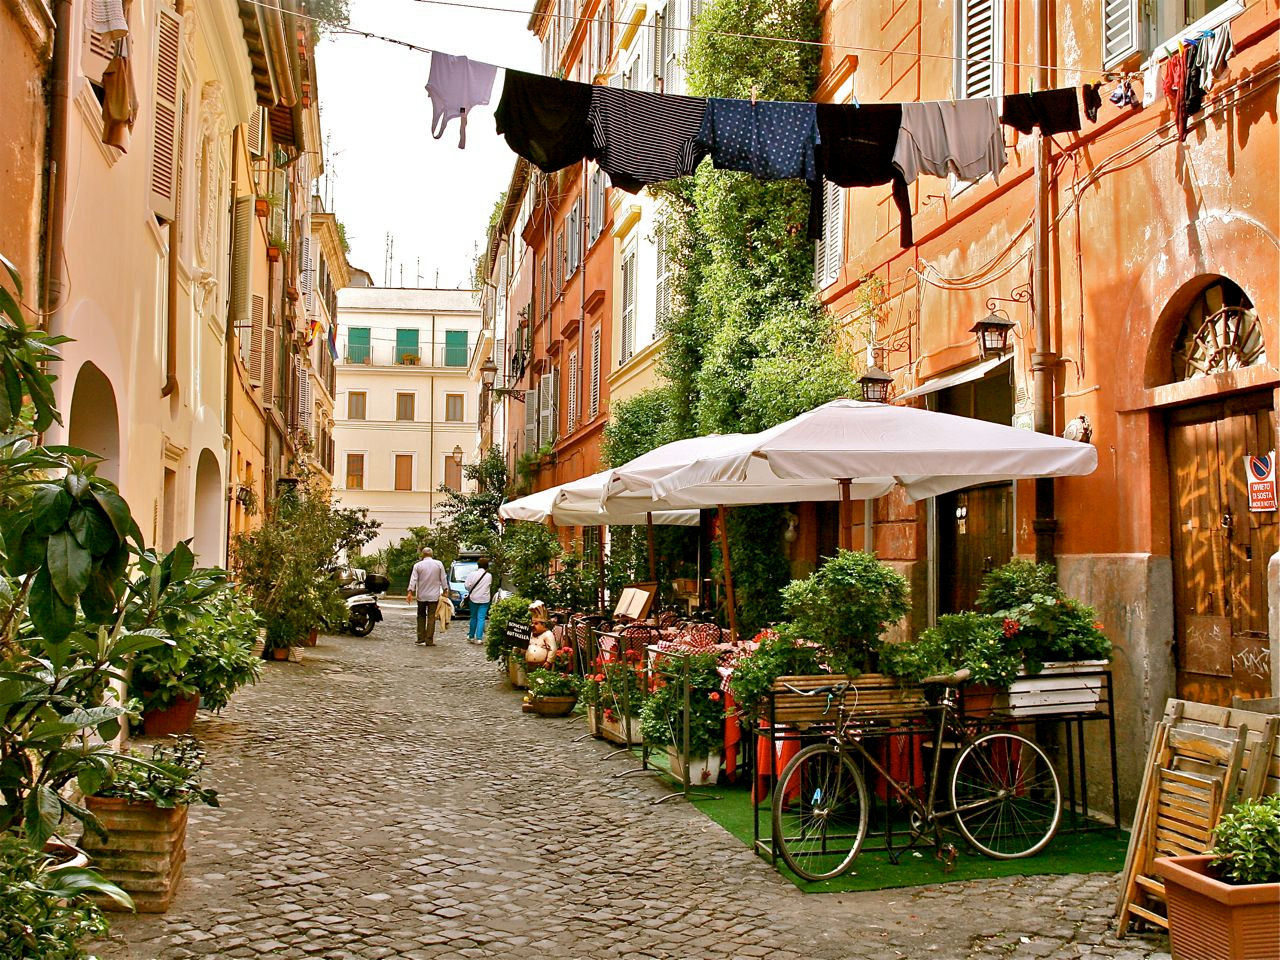 A suggestive glimpse of Trastevere, in Rome